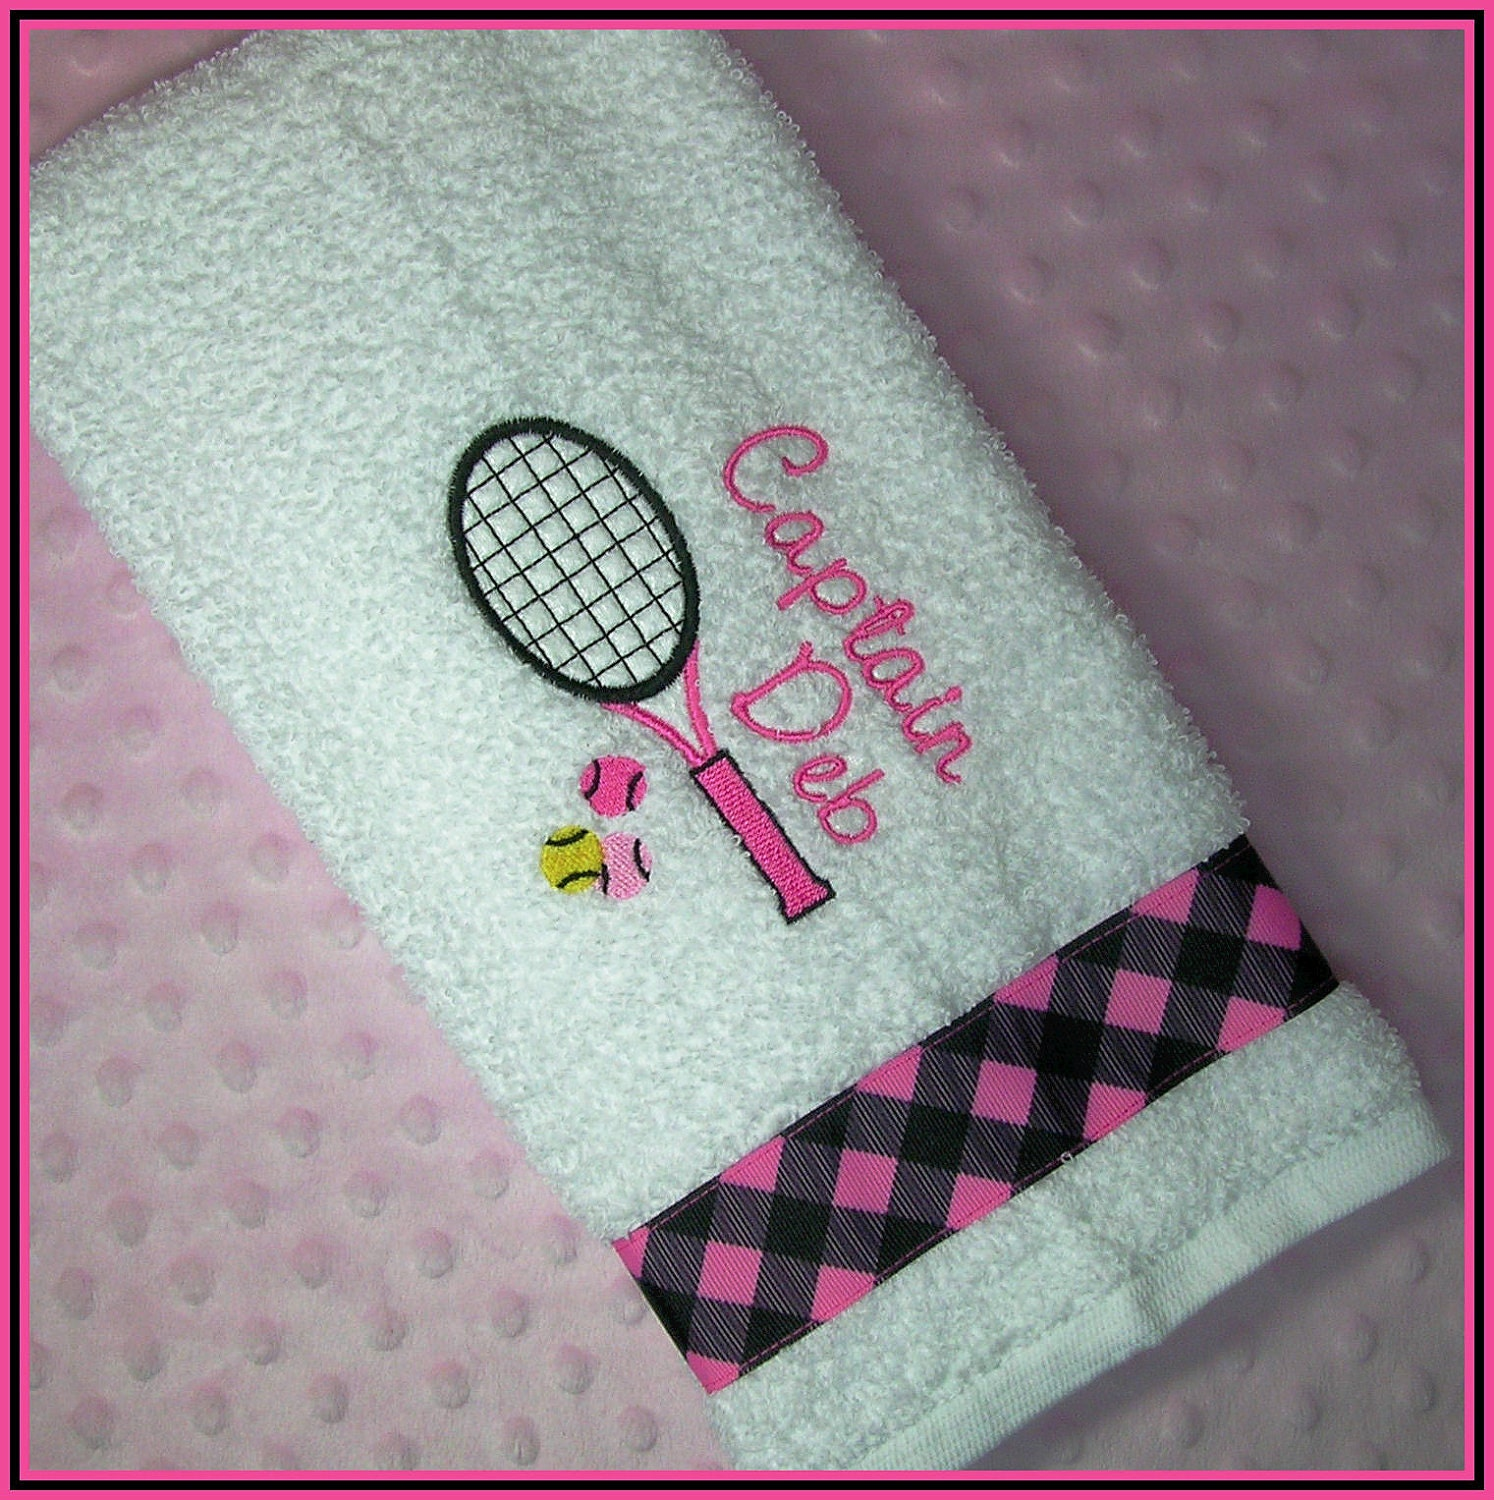 Personalized Sweat Towel: Personalized Tennis Racket Sweat Towel With Racket And Balls